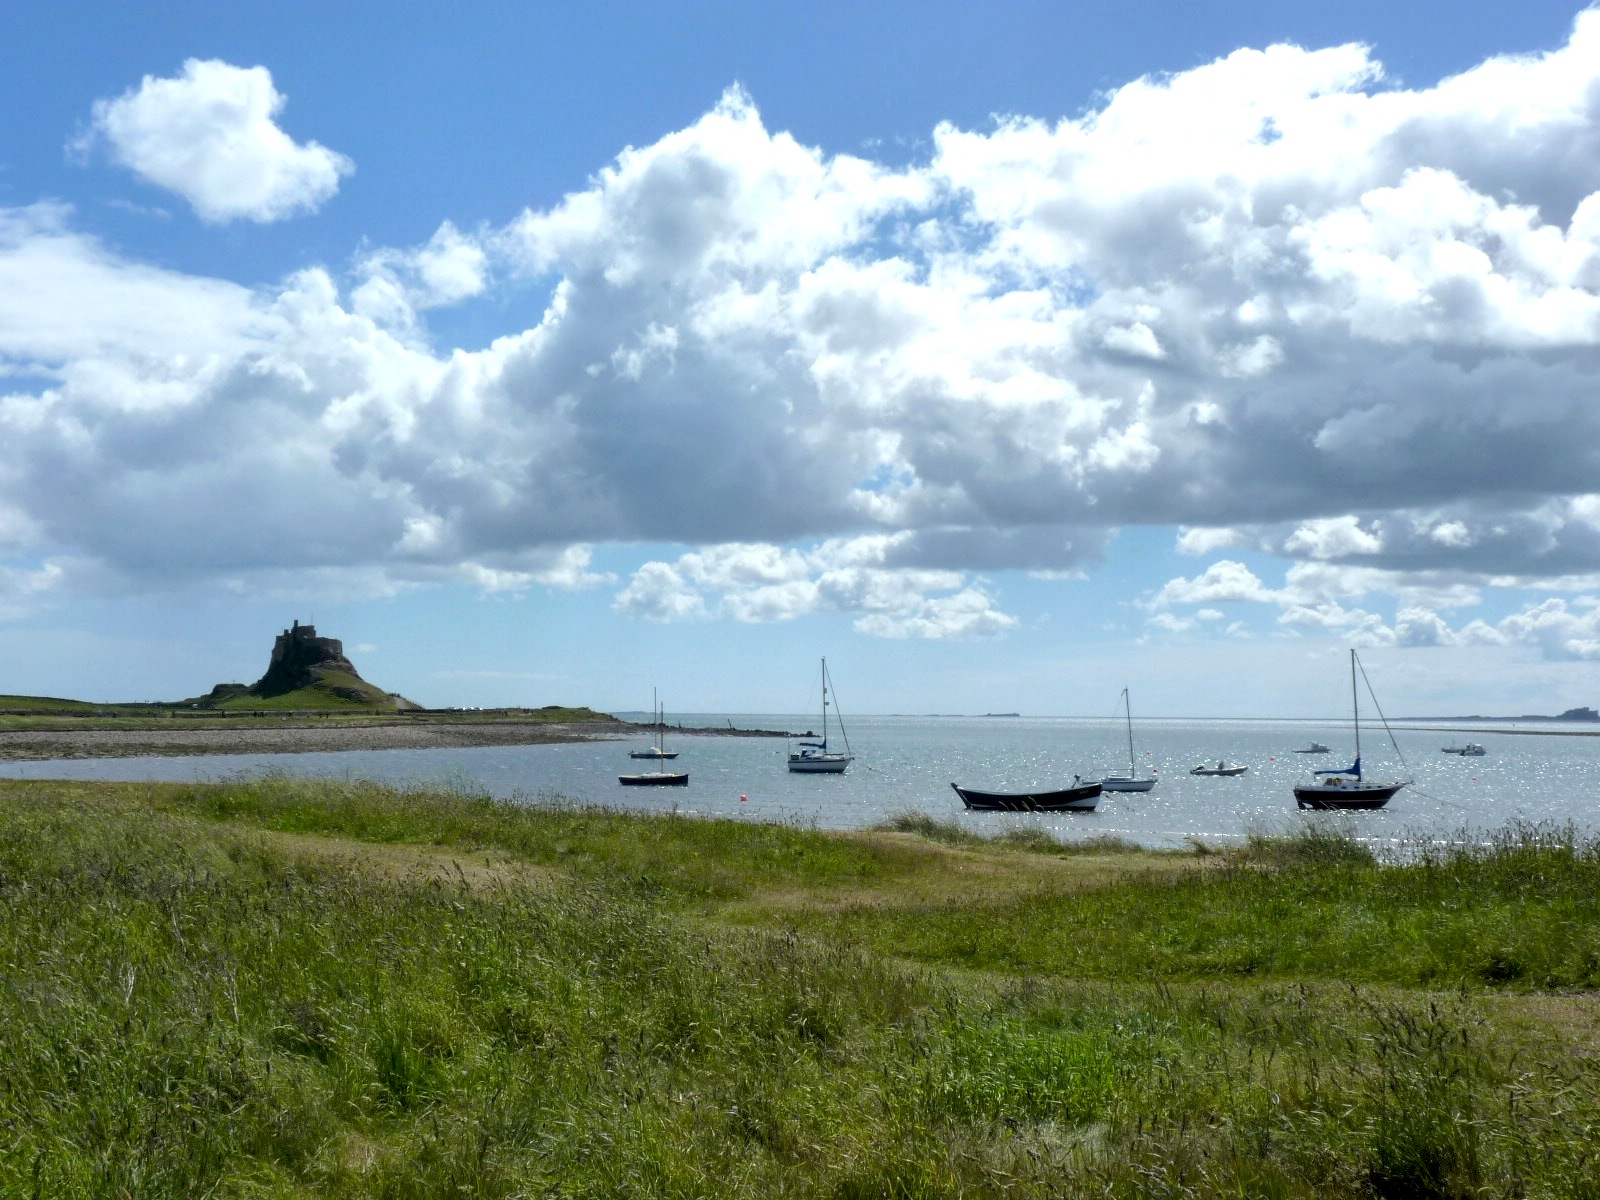 Holy-Island-Bay-and-Boats.jpg